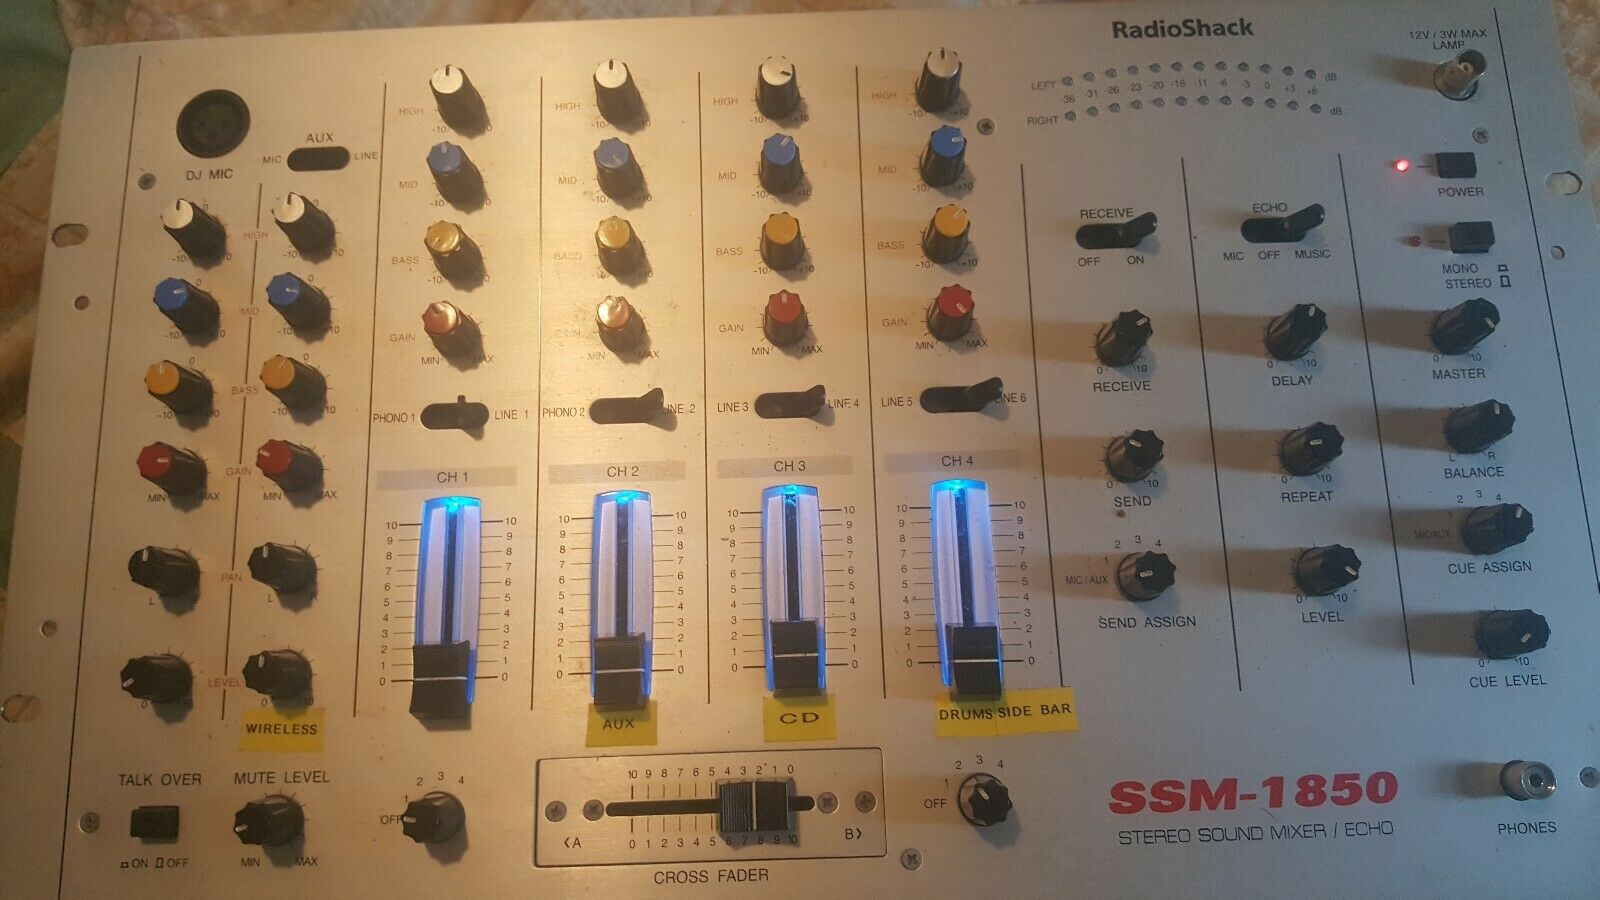 Radio Shack SSM-1850 Stereo 4 Channel Mixer / Equalizer . Buy it now for 150.00